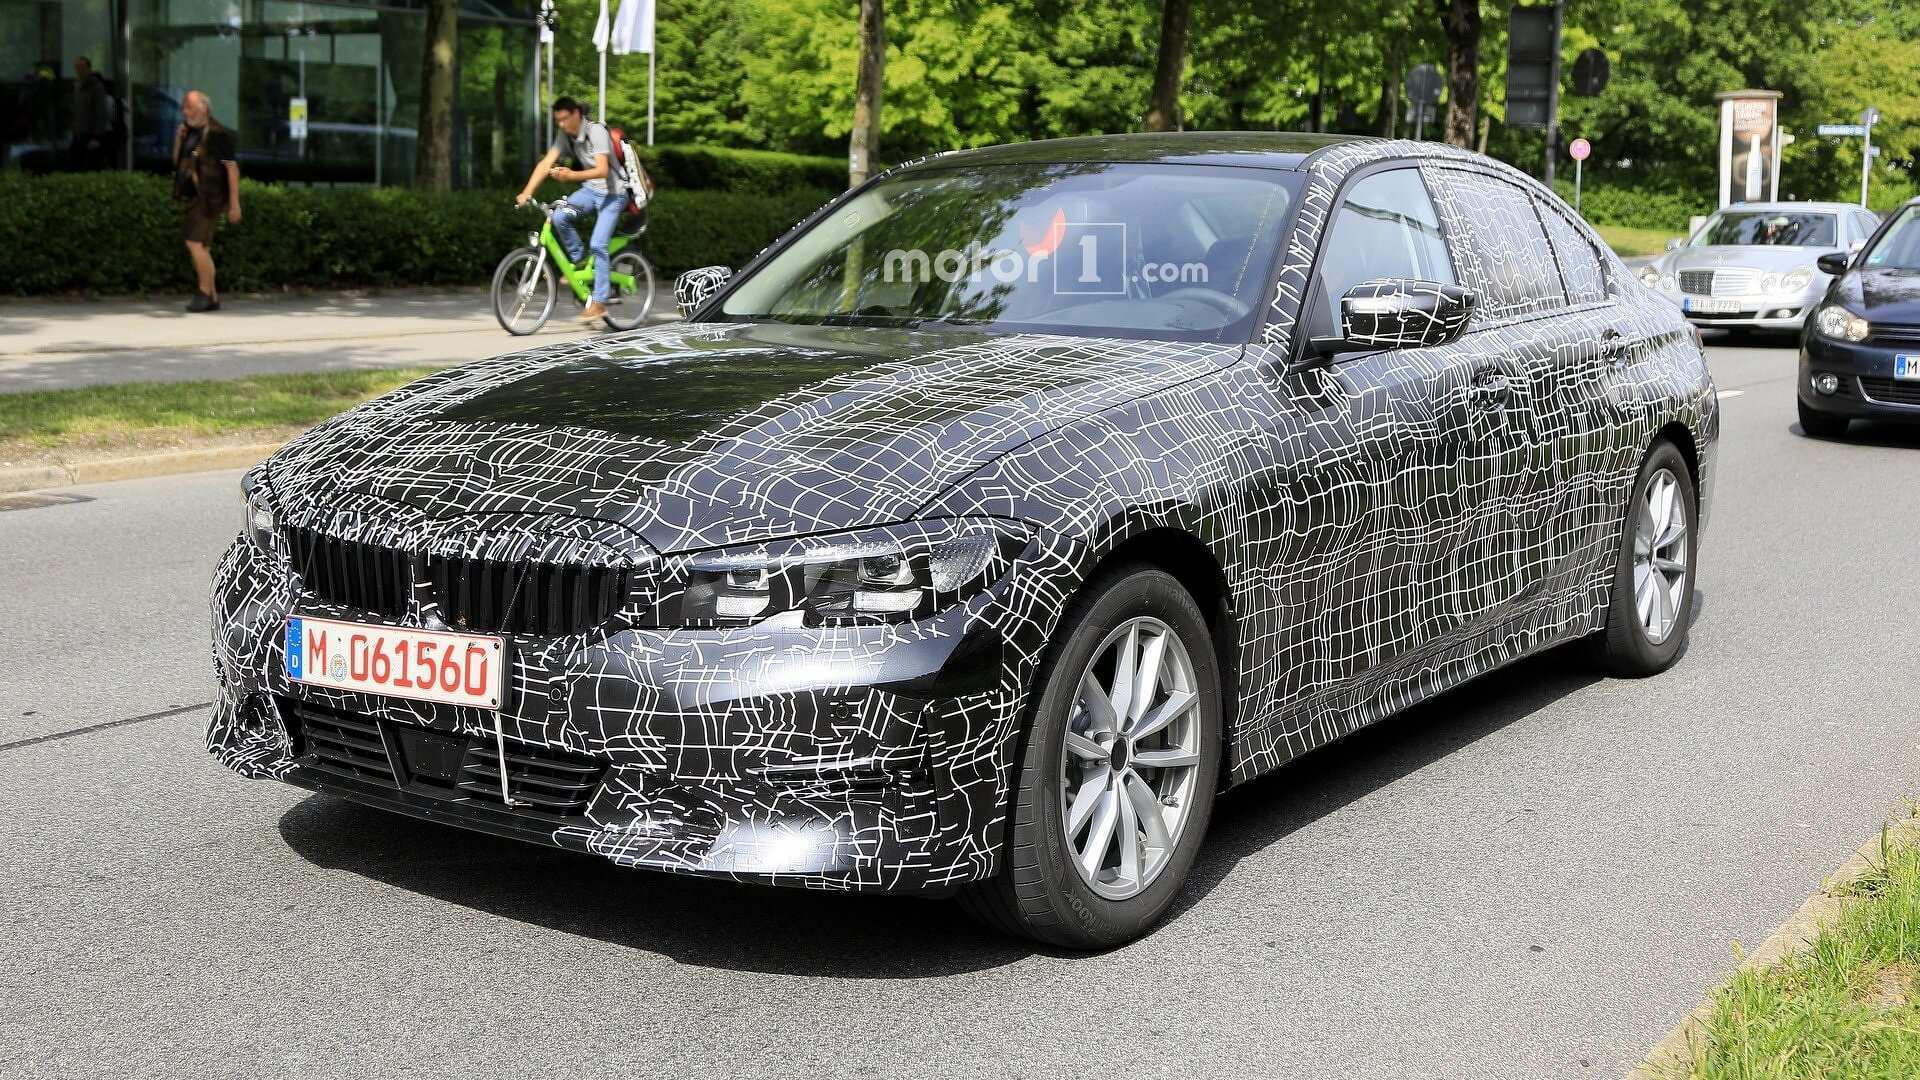 50 Concept of Spy Shots 2020 BMW 3 Series Pictures by Spy Shots 2020 BMW 3 Series